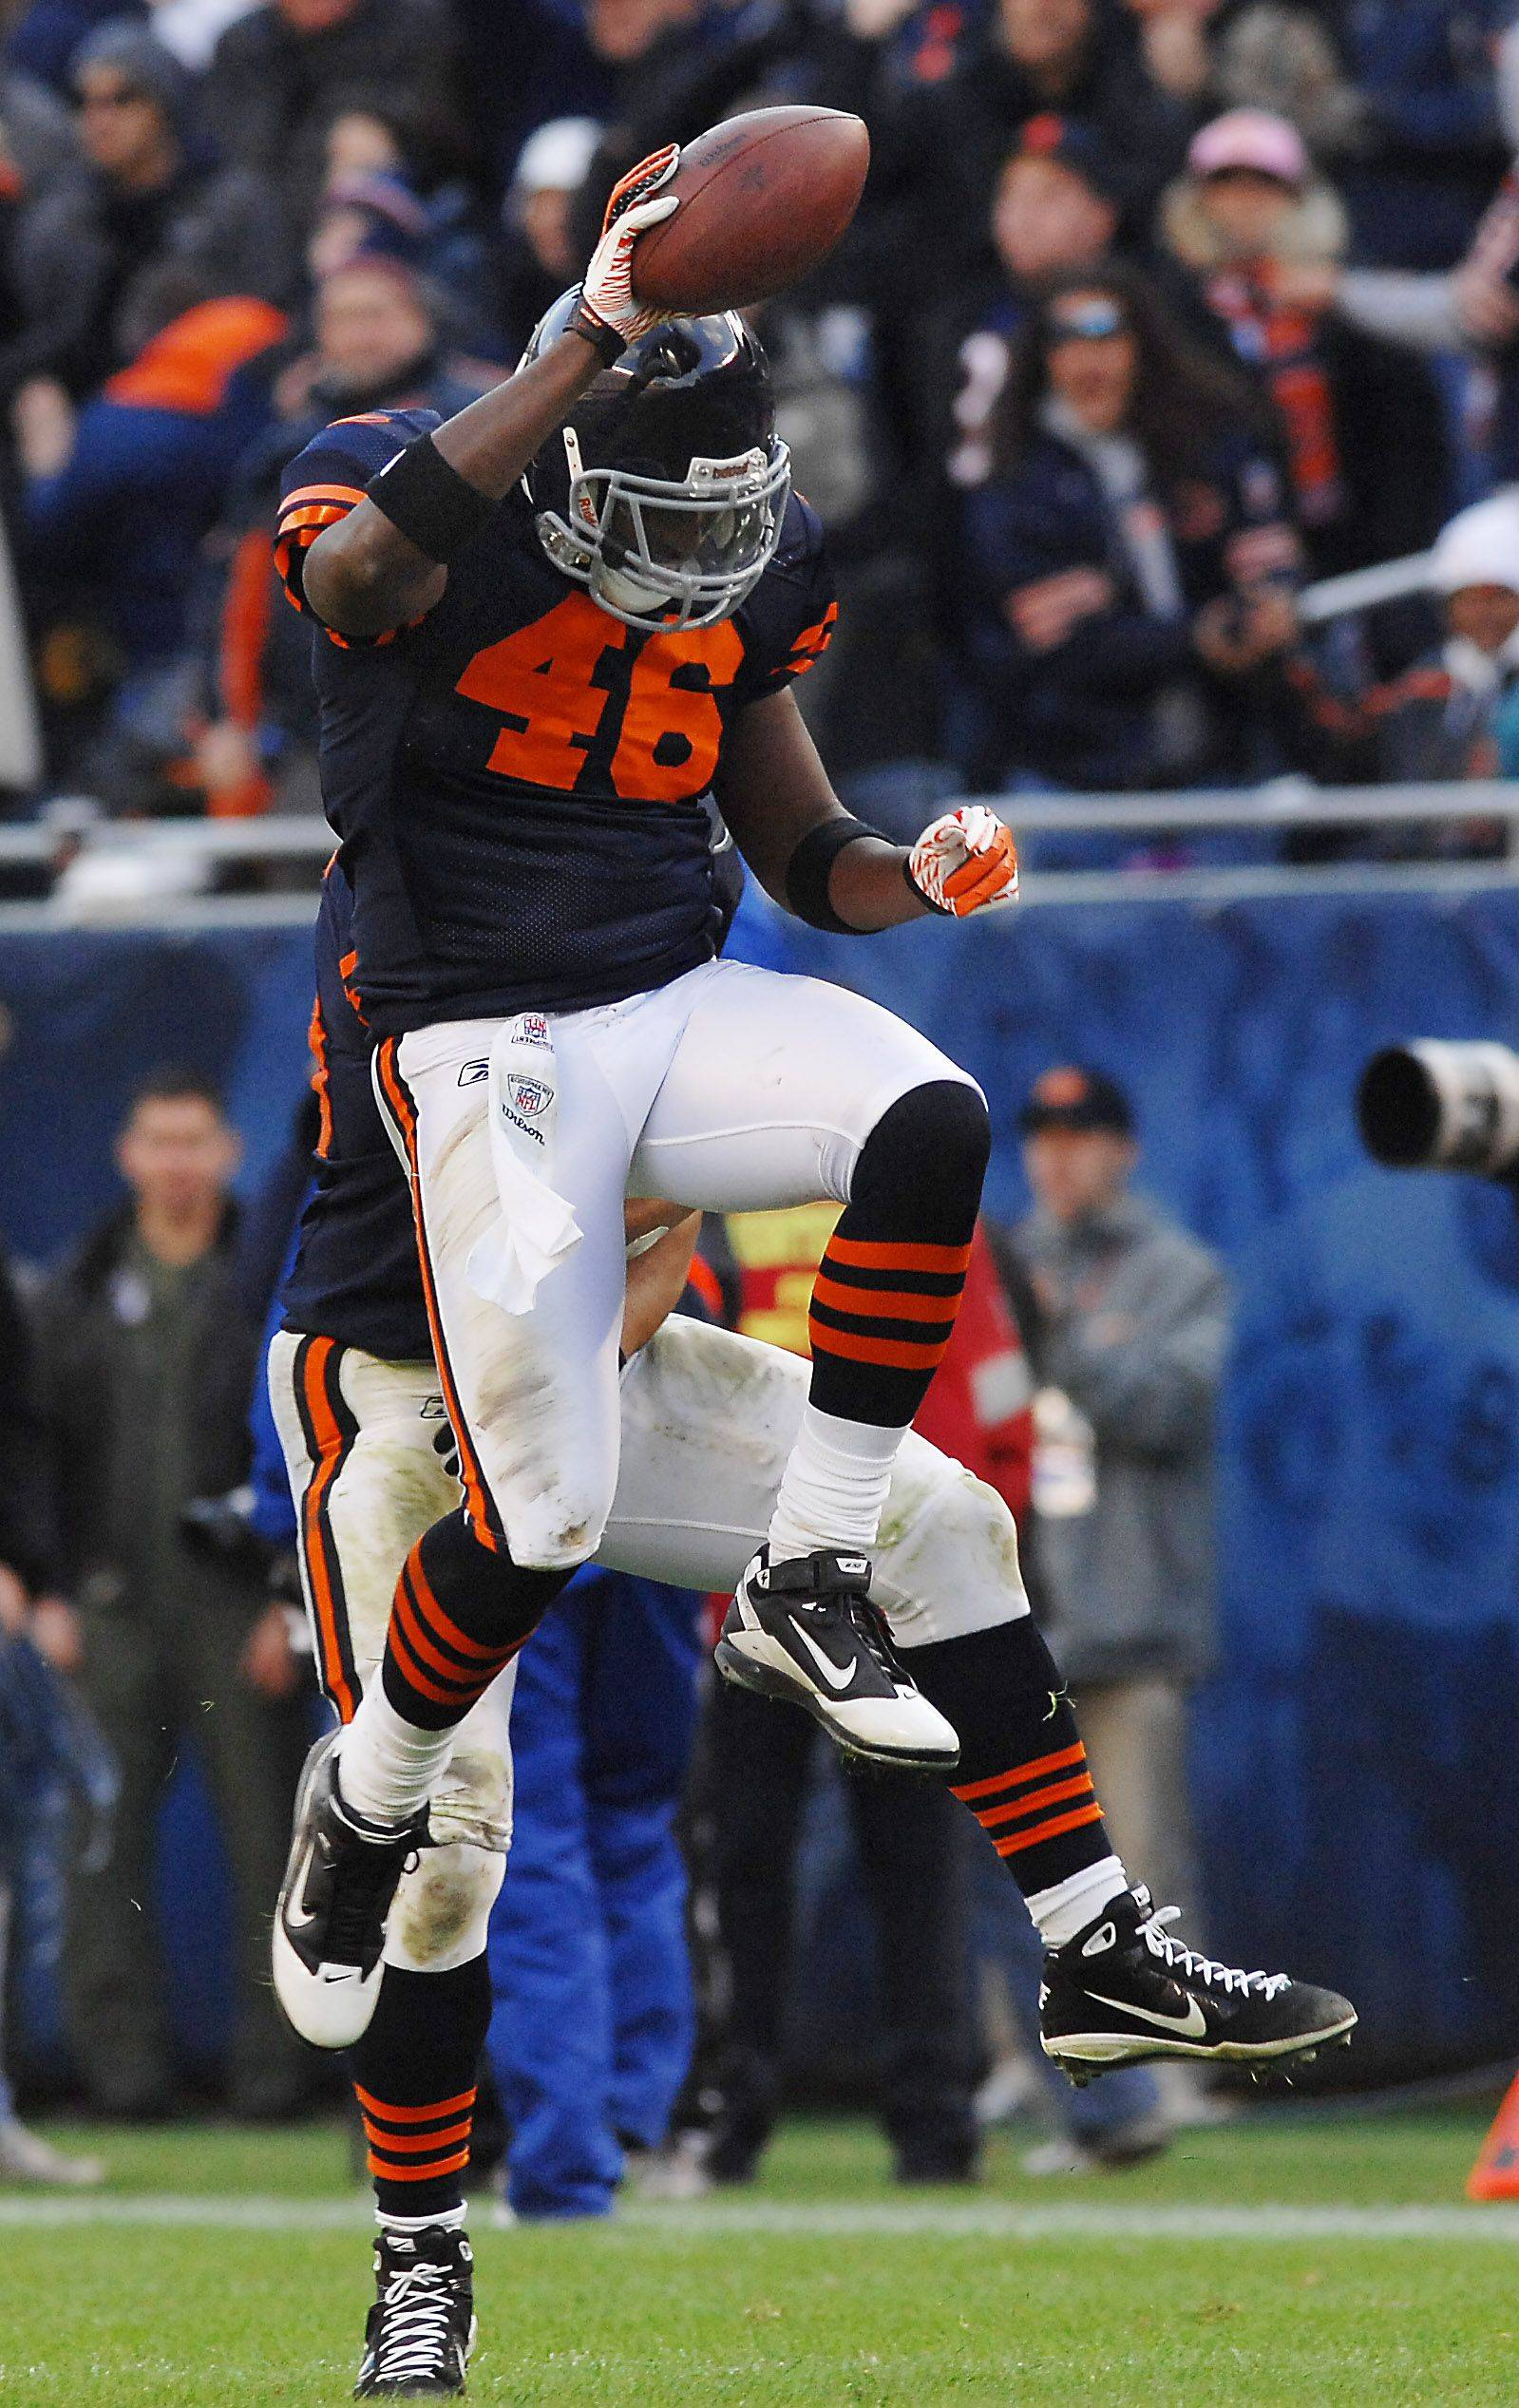 Bears Chris Harris celebrates his interception from Minnesota's Brett Favre in the 4th quarter with his teammates.